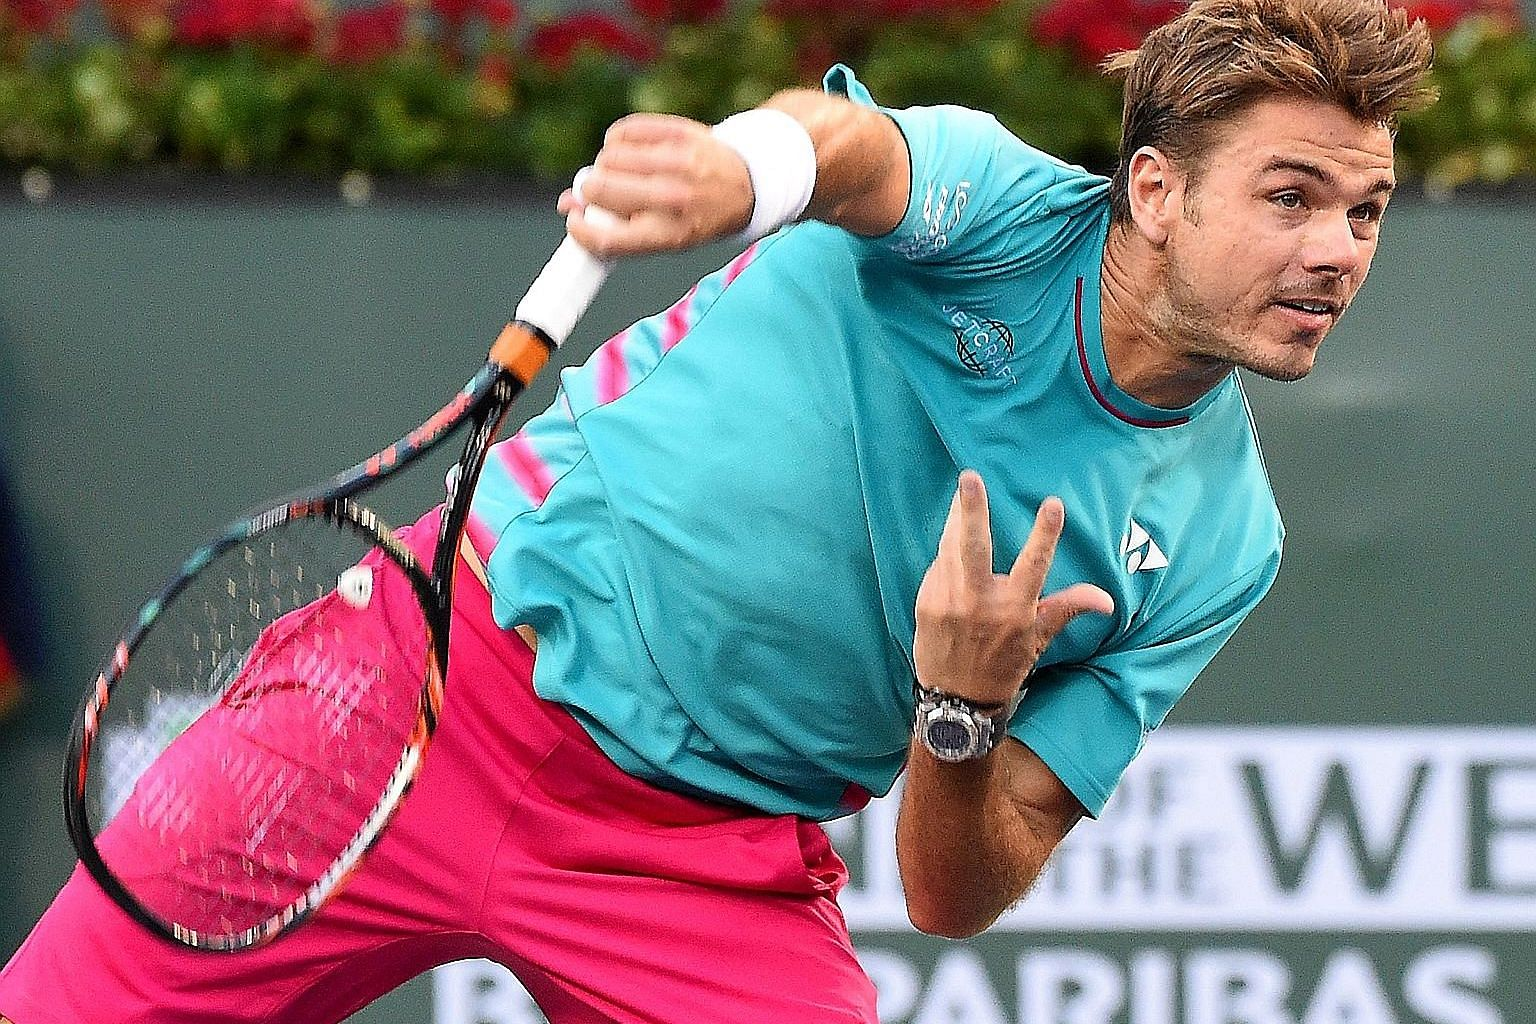 Stan Wawrinka serving to German Philipp Kohlschreiber at Indian Wells. The Swiss had seven aces and did not face a single break point en route to his 7-5, 6-3 victory.